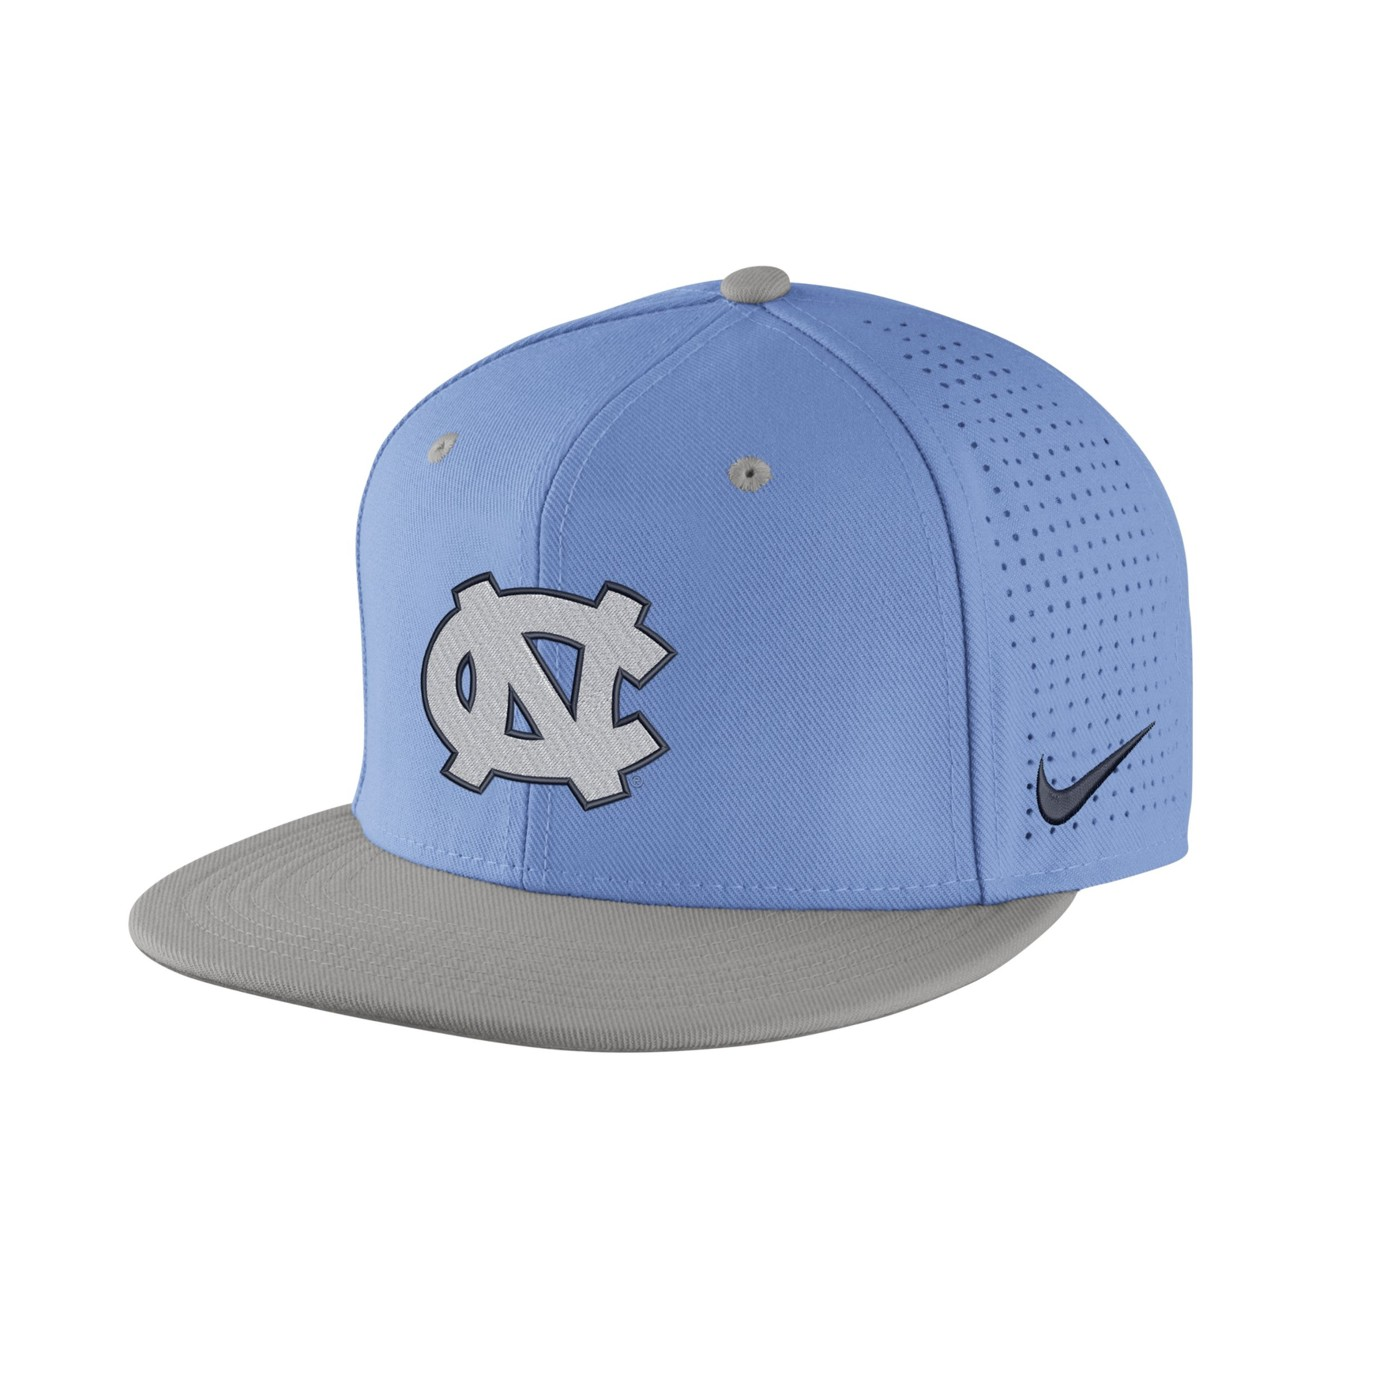 Johnny T-shirt - North Carolina Tar Heels - Nike Vapor Authentic Baseball  Flat Bill Fitted Hat (CB Grey) by Nike 703f57fd32f8